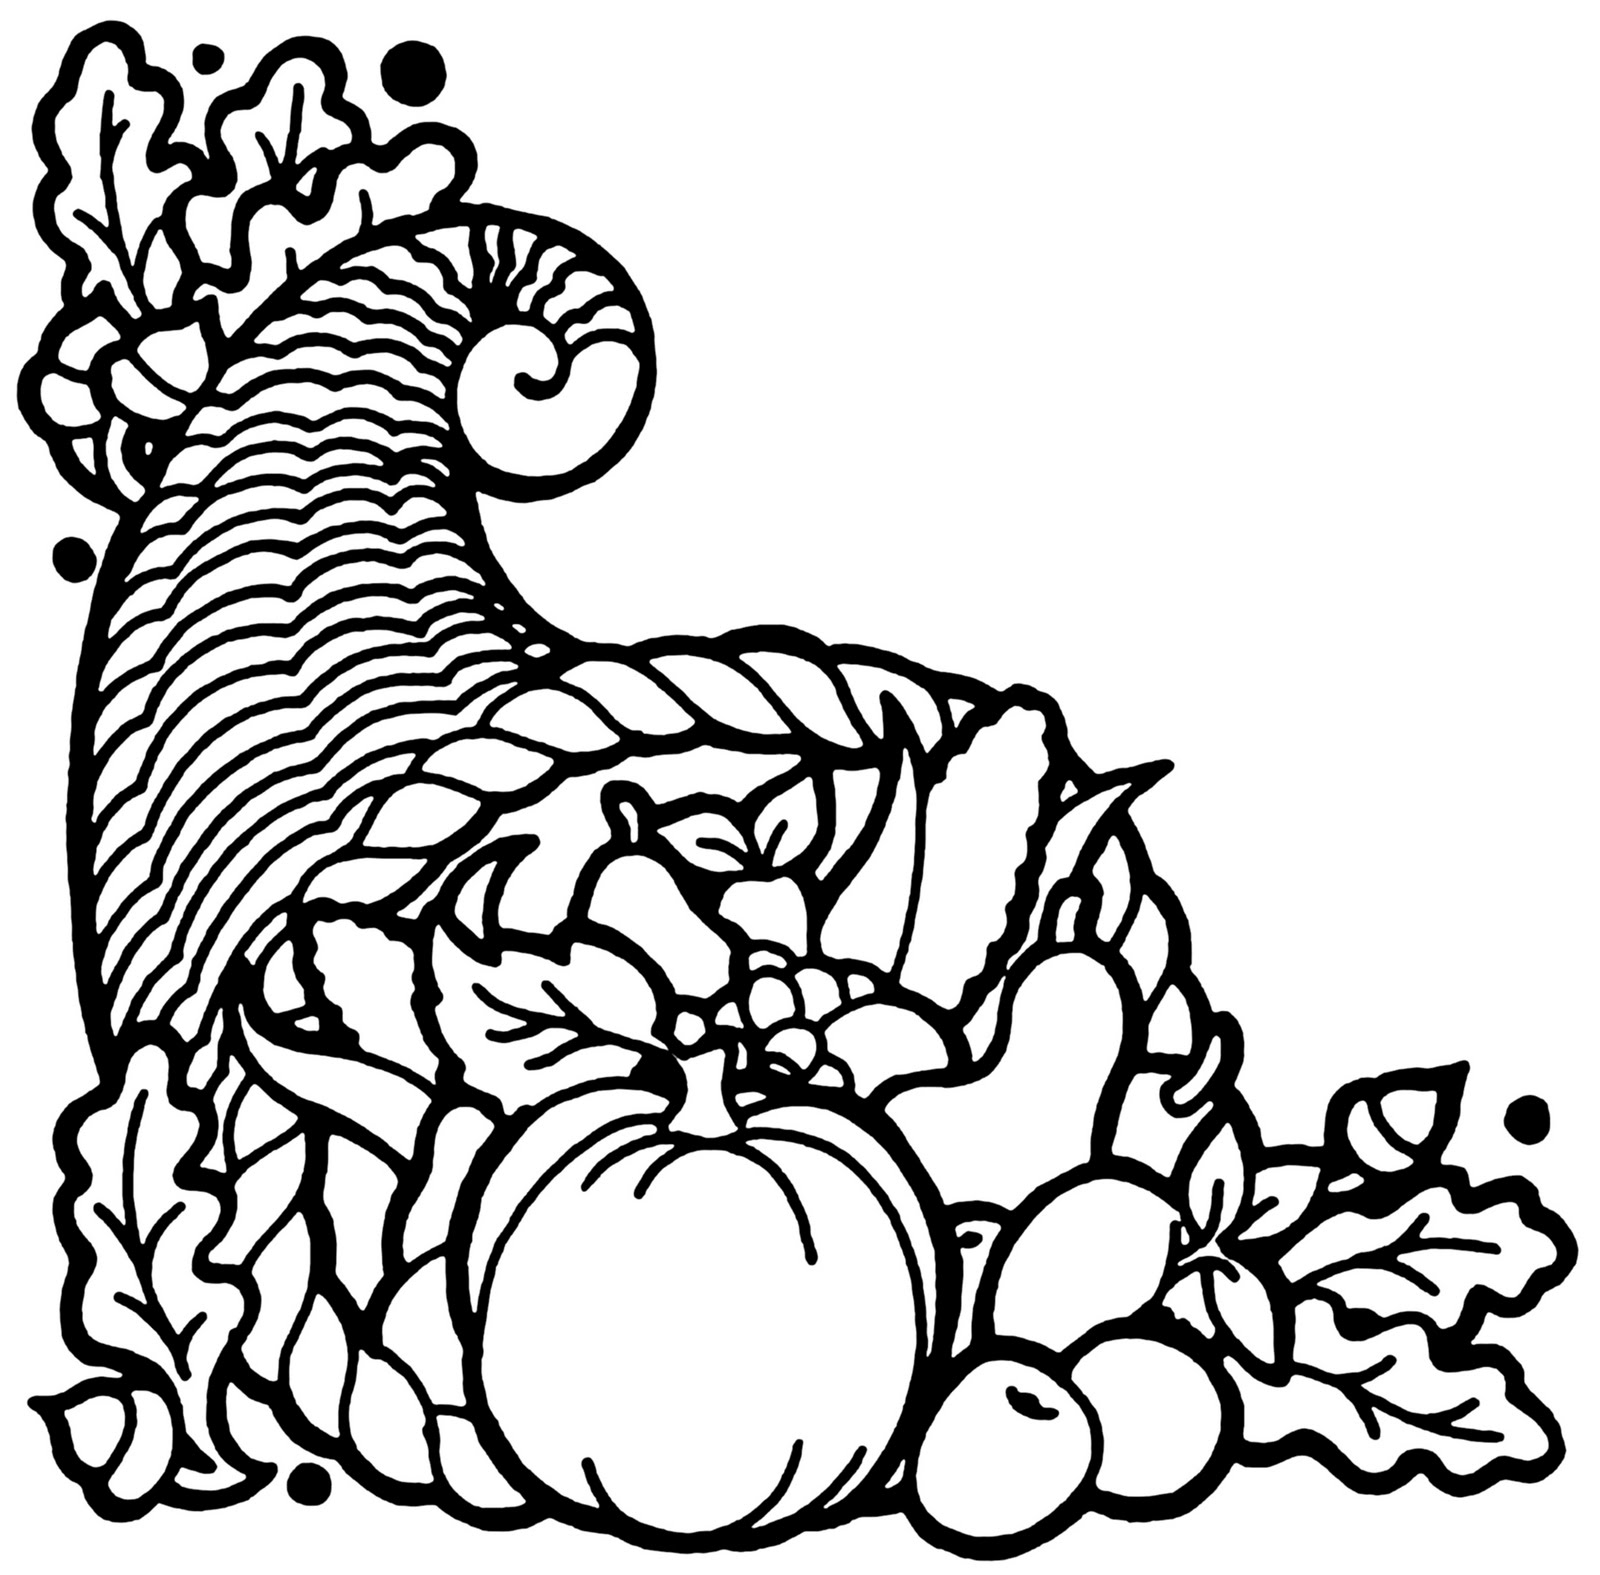 Cornucopia Clip Art Black And White